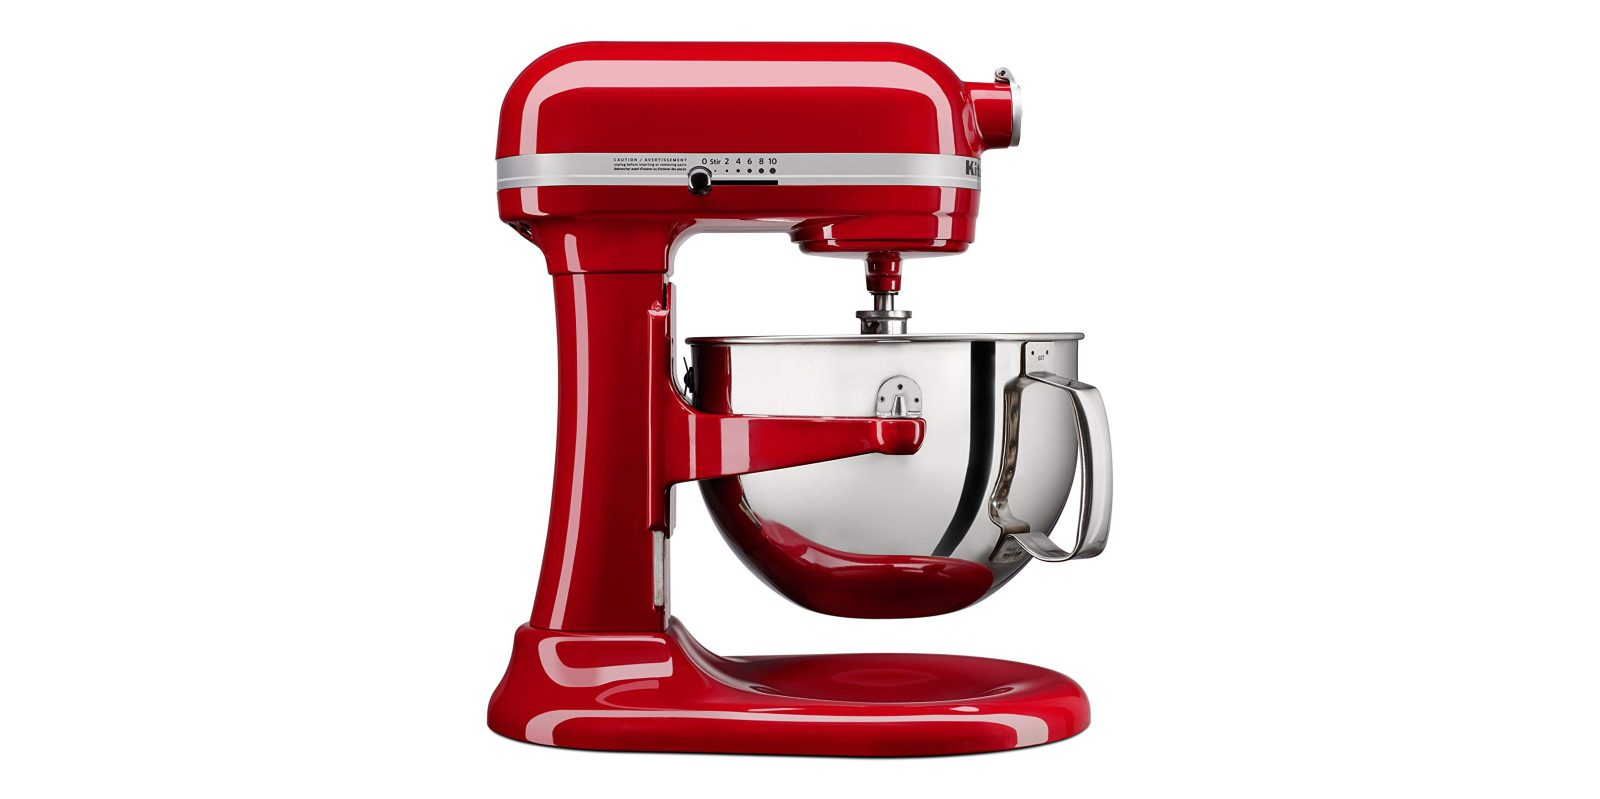 Kitchenaid S 6 Qt Mixer Hits Amazon All Time Low In